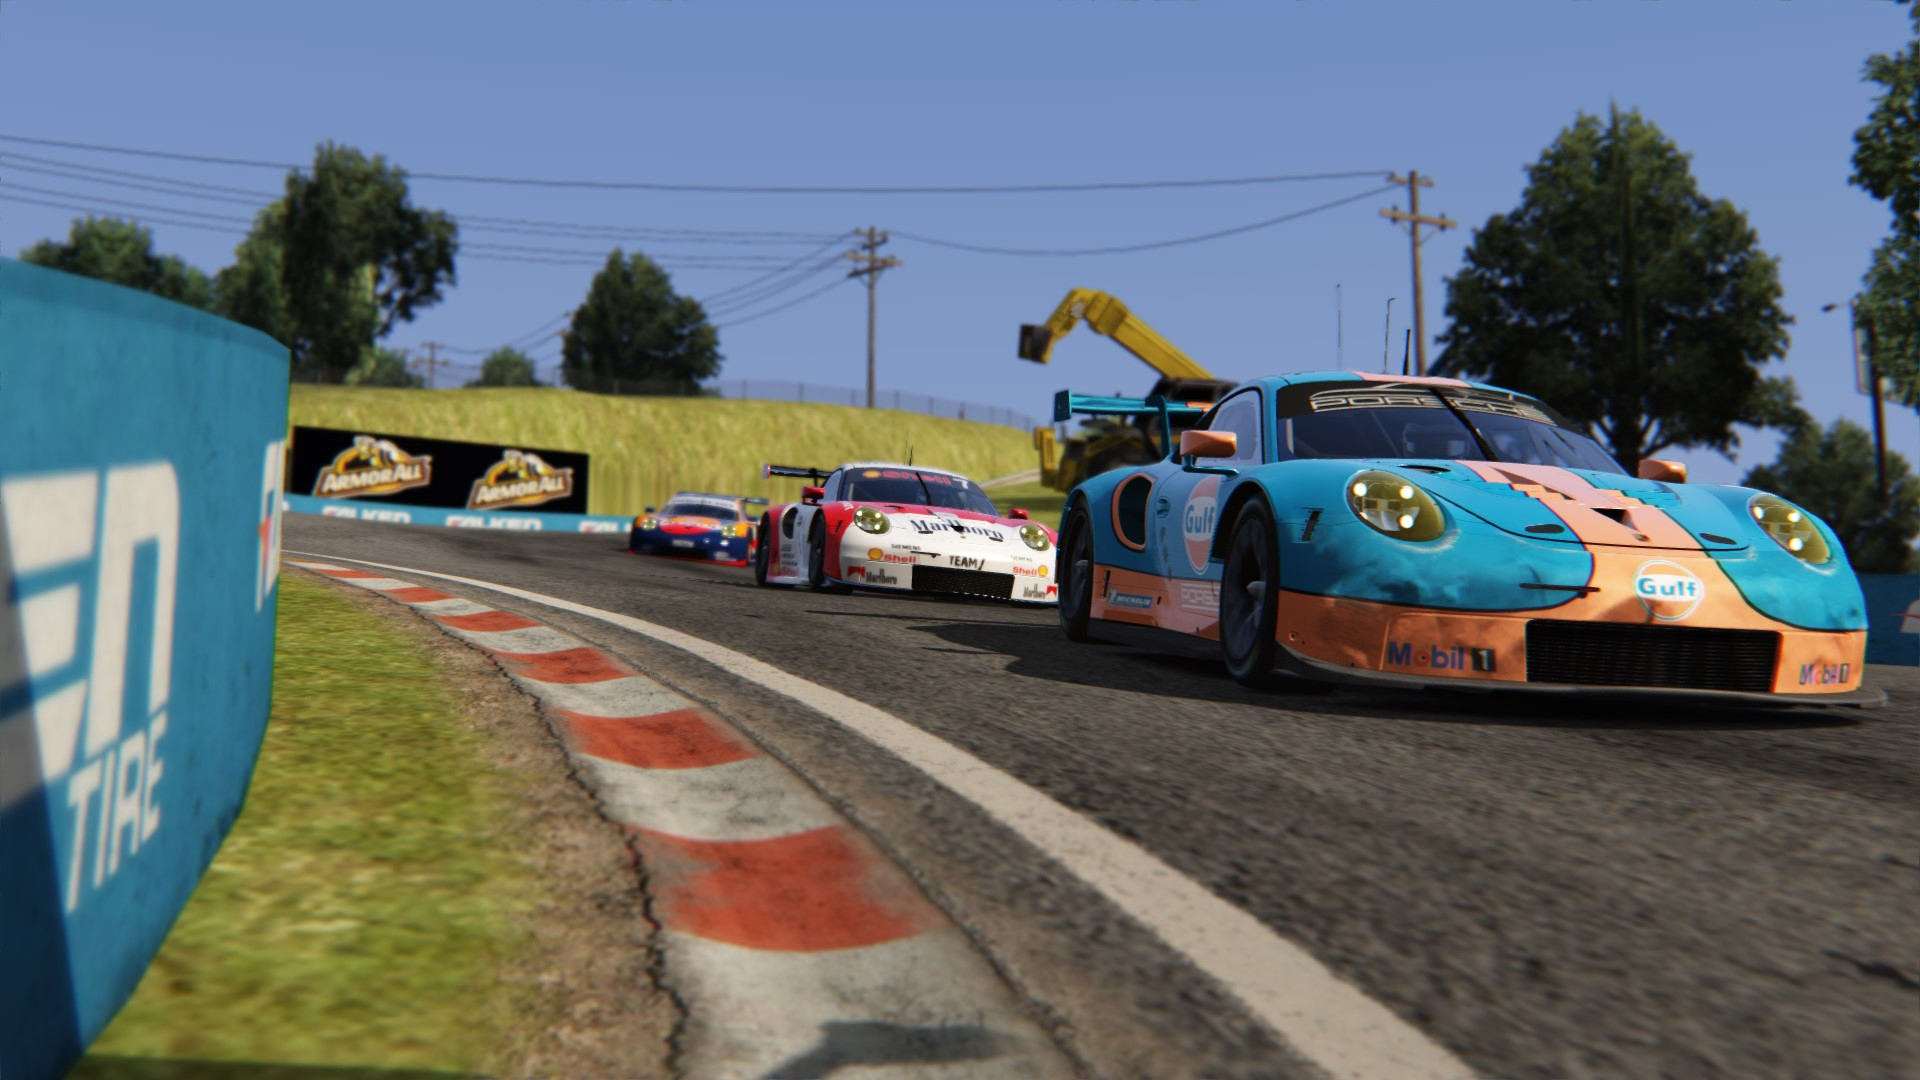 Screenshot_ks_porsche_911_rsr_2017_bathurst_30-7-117-2-32-25.jpg